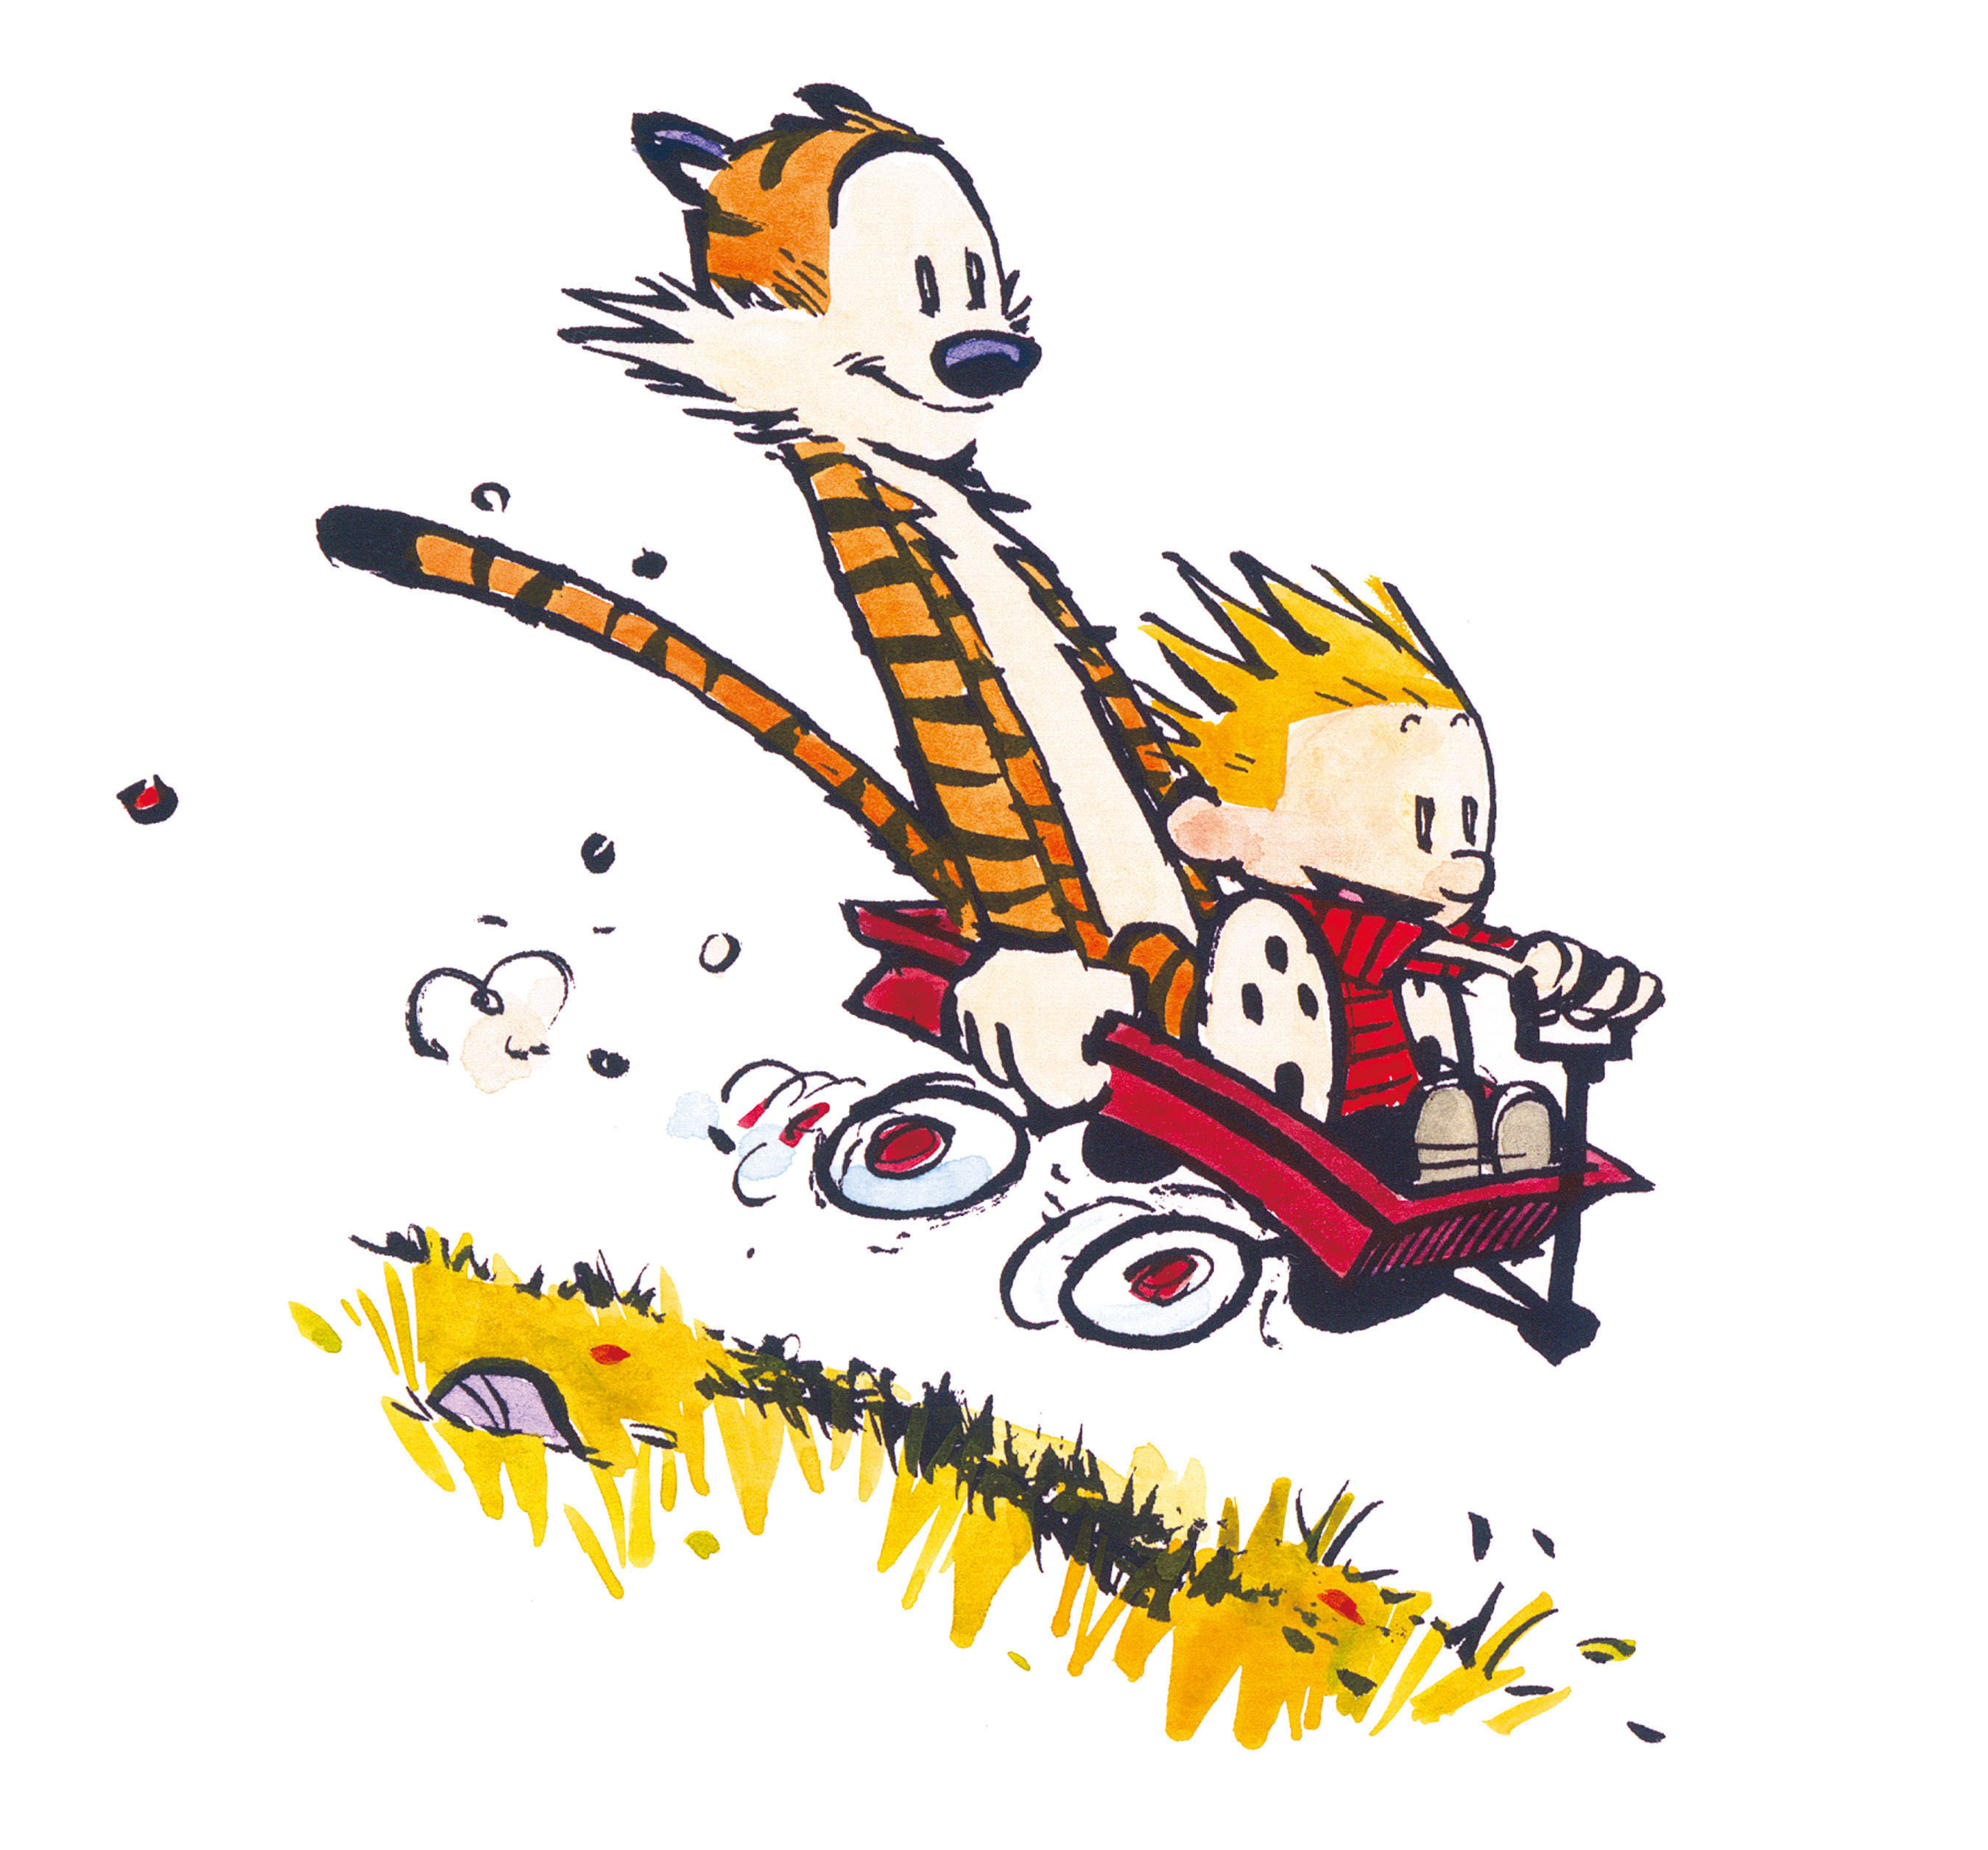 Calvin and Hobbes available in e-books November 12, 2013 (c) 2013 Bill Watterson. (PRNewsFoto/Andrews McMeel Publishing) (PRNewsFoto/ANDREWS MCMEEL PUBLISHING)